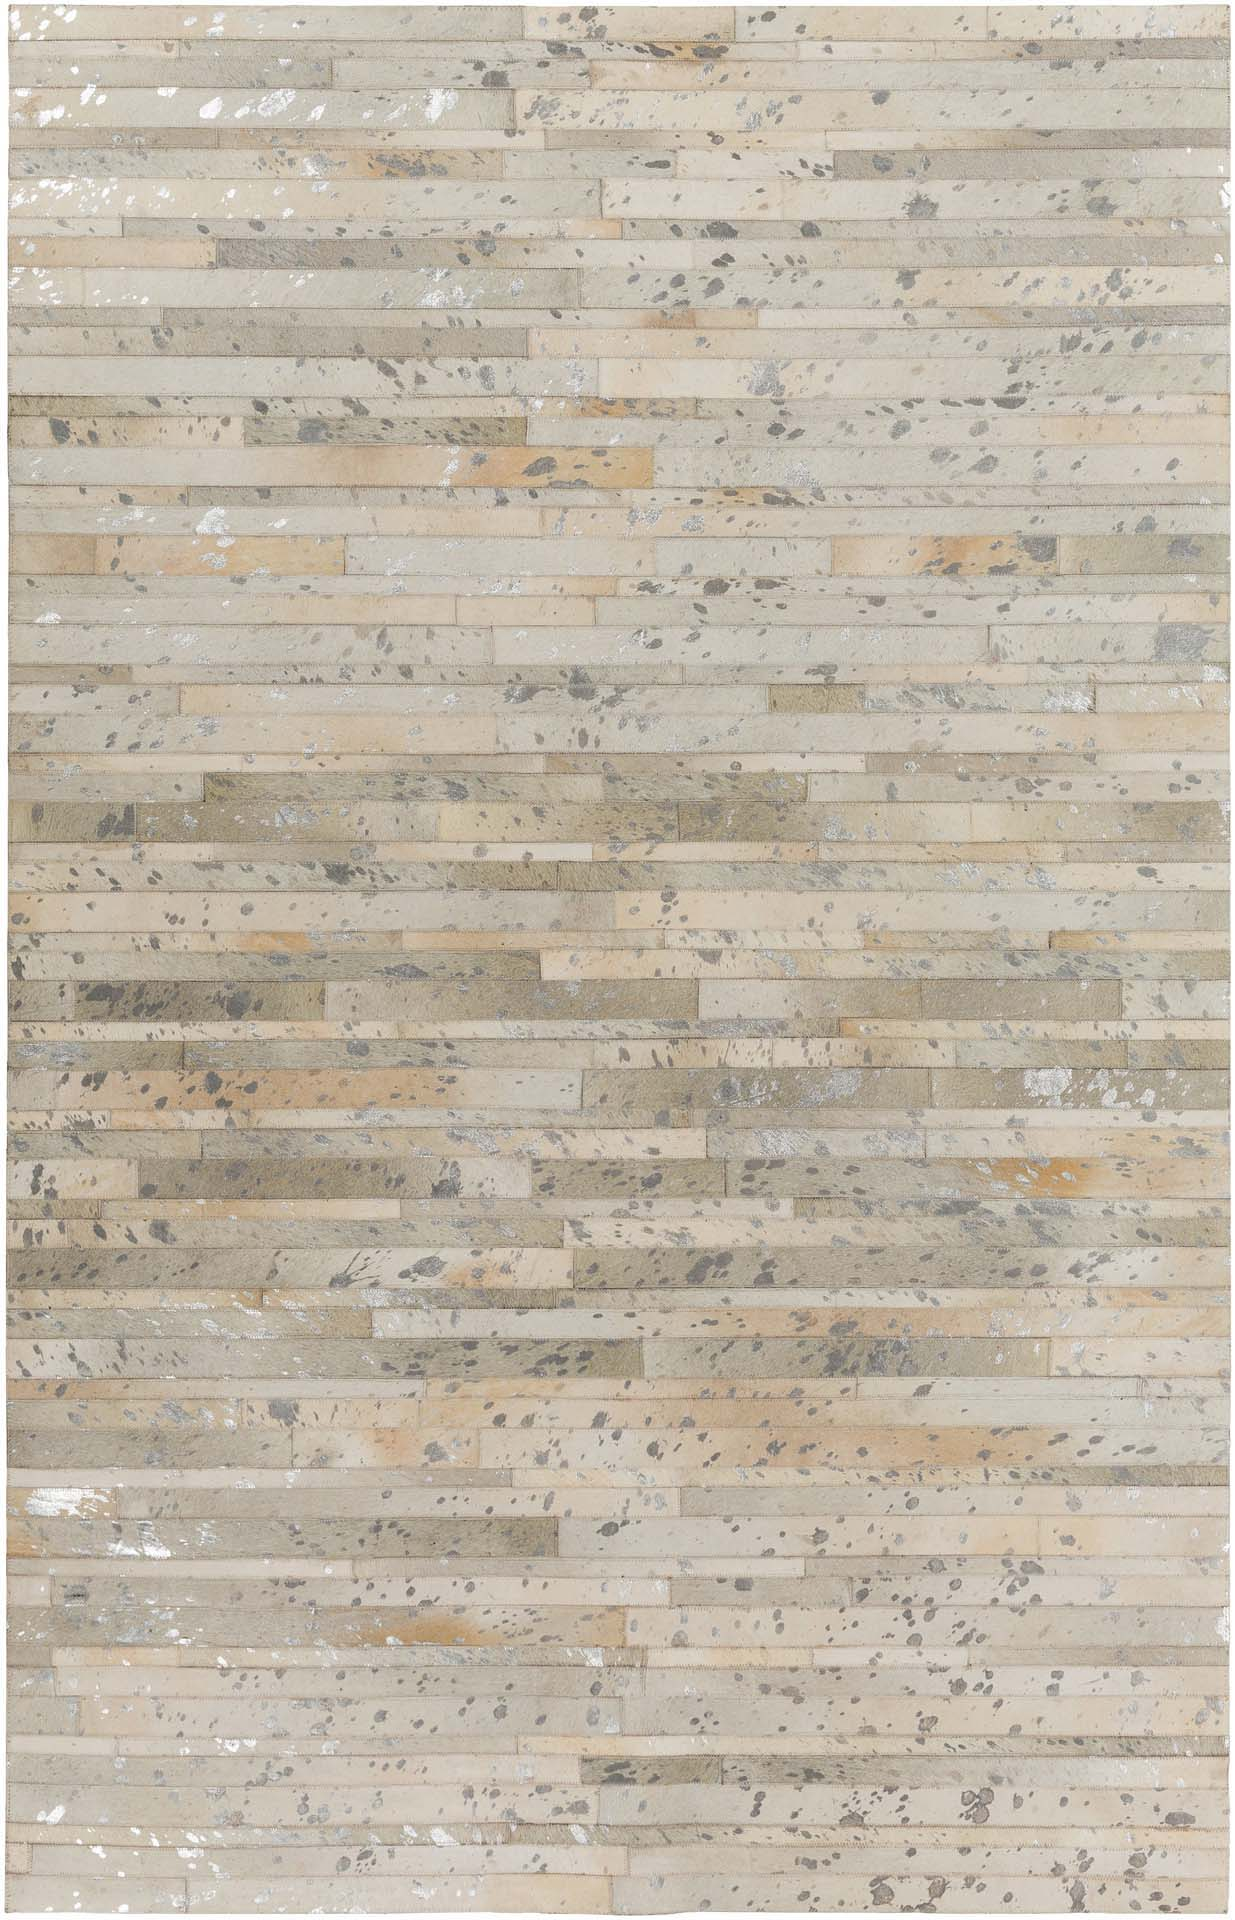 Handmade Surya Hewitt Collection rug is made with hair on hide from India and features a distressed gray and ivory pattern with a touch of fashion forward flair.